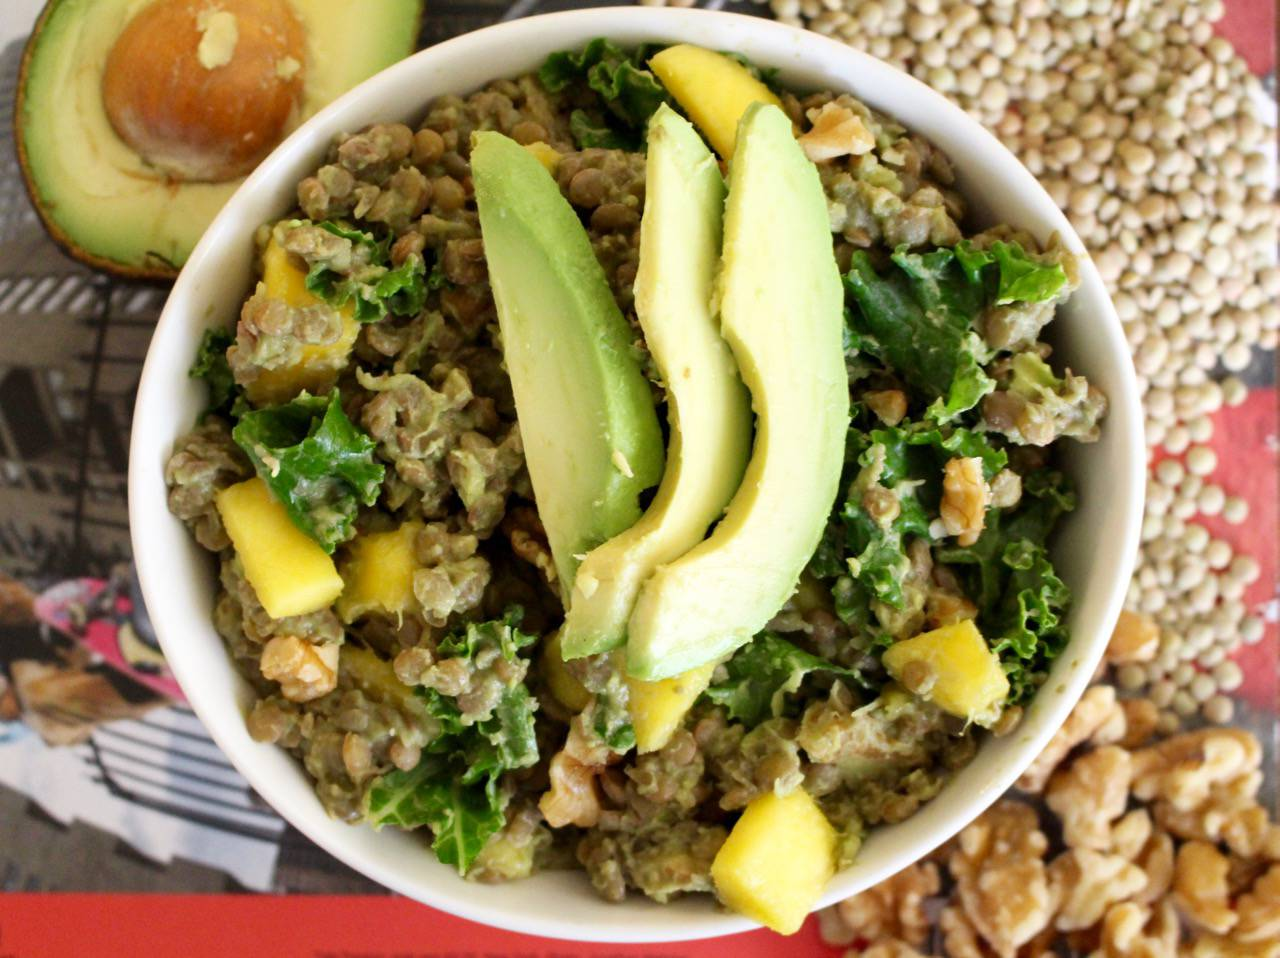 YAJE-INSPIRED AVOCADO LENTILS -- Salad Grinds and Bean Plants #16